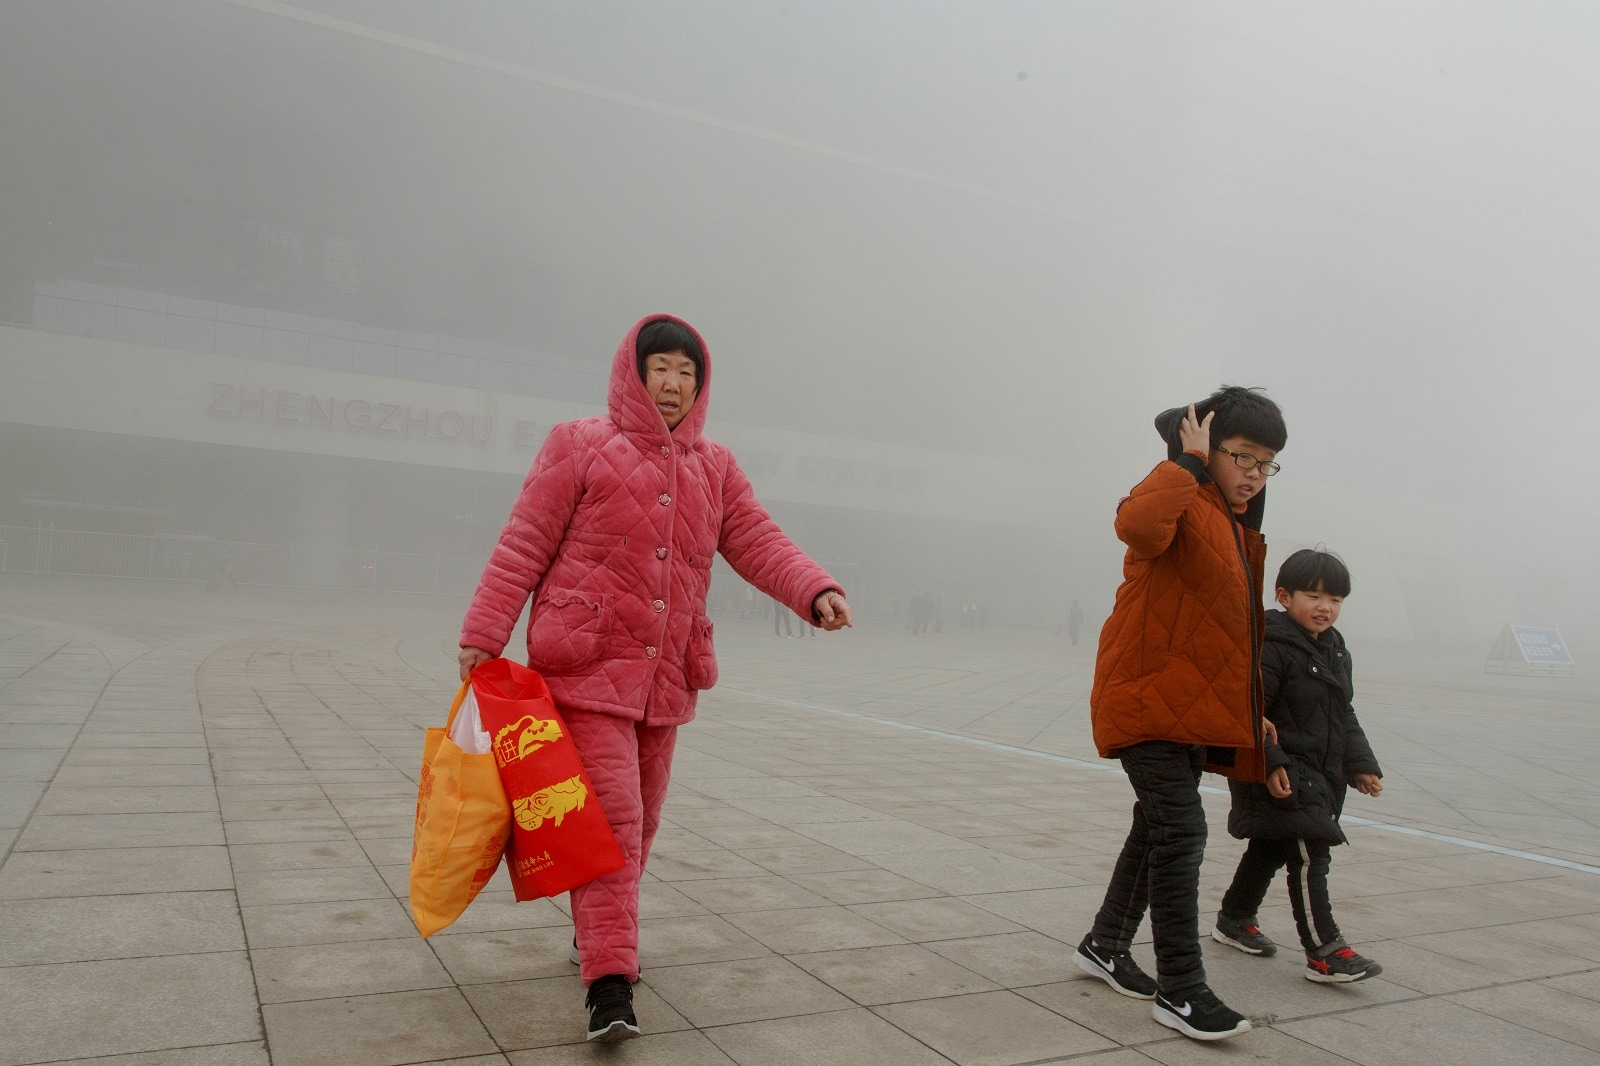 People leave the high-speed railway station on a hazy morning in Zhengzhou, Henan province, China February 21, 2019. REUTERS/Thomas Peter